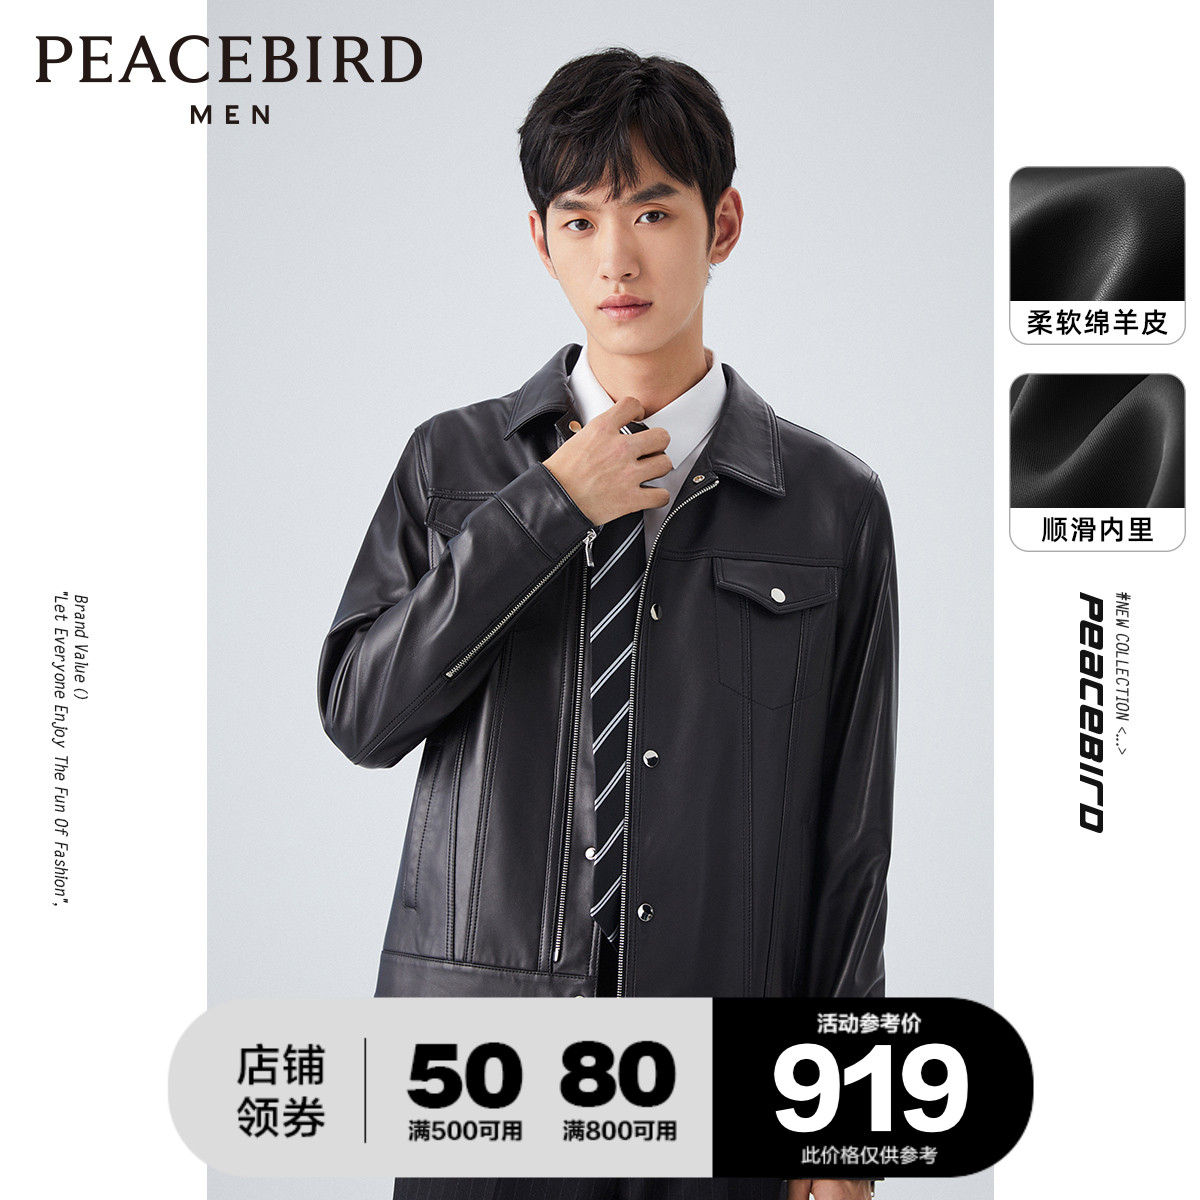 Peacebird Men's Clothing Sheep Skin Leather Leather Men's Topstitch Jacket Lapel Lapel Leather Fashion Business Jacket